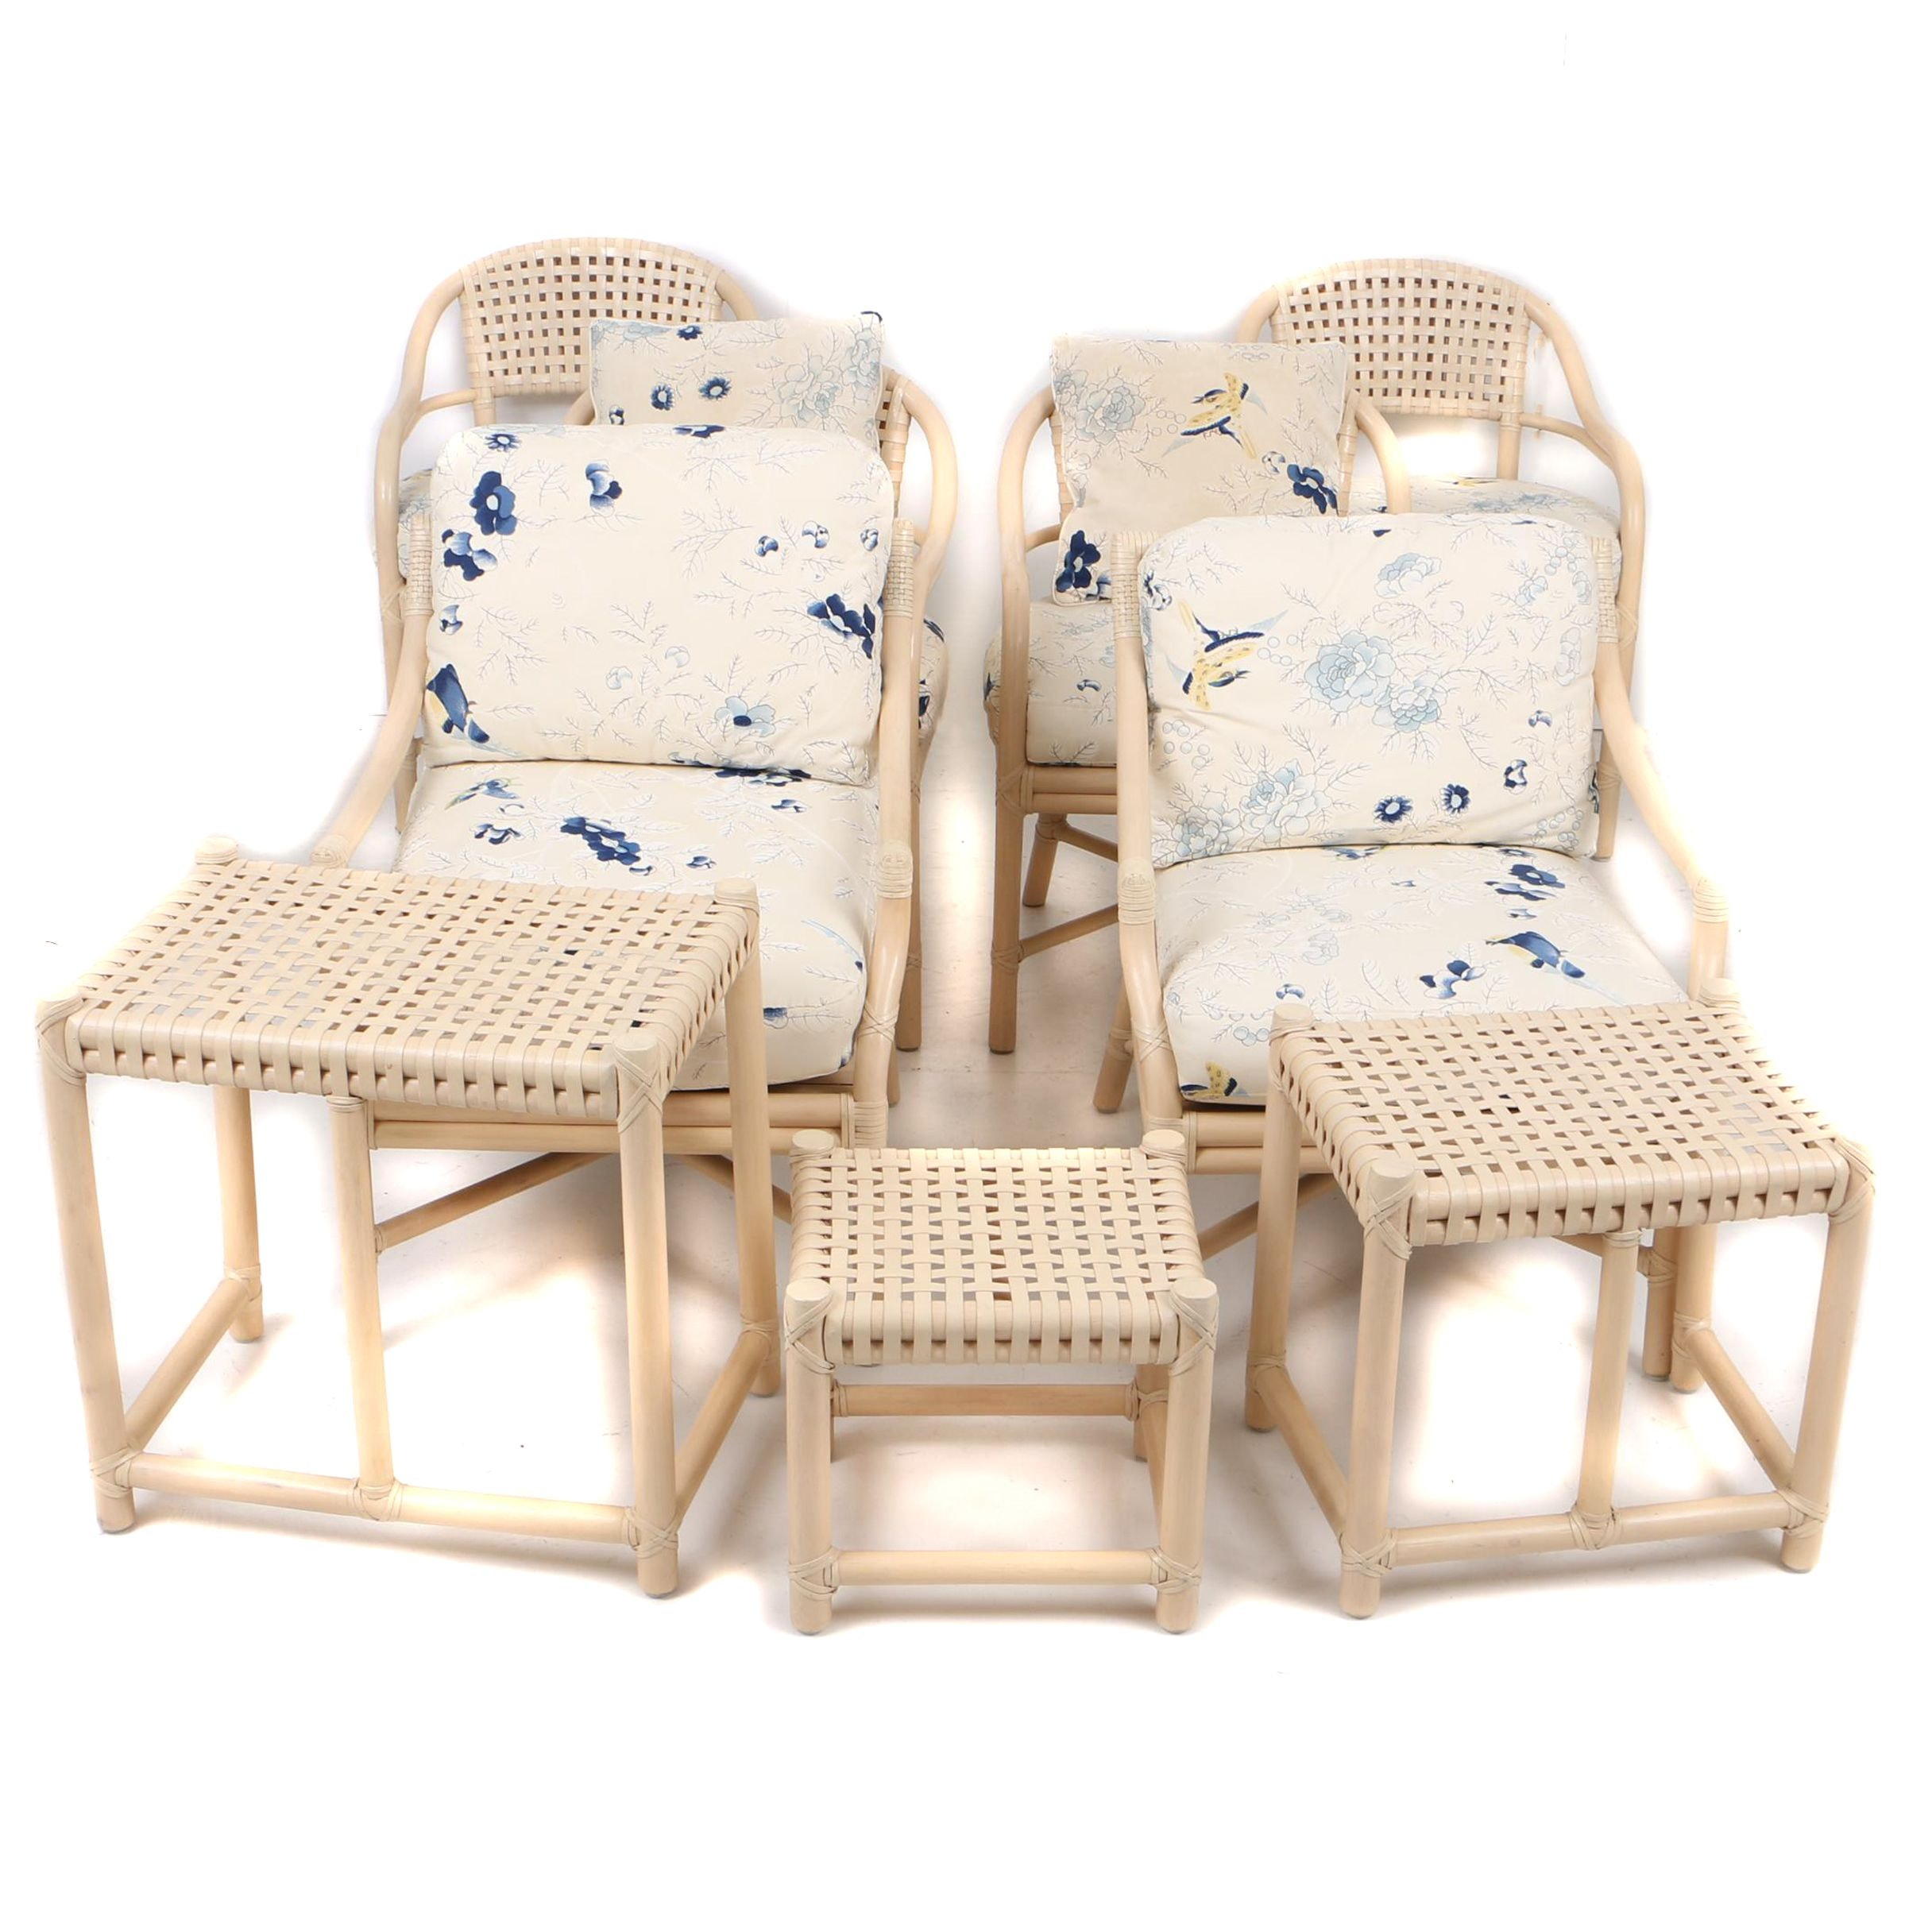 McGuire of San Francisco Rattan Style Chairs and Table Set in Nine Pieces